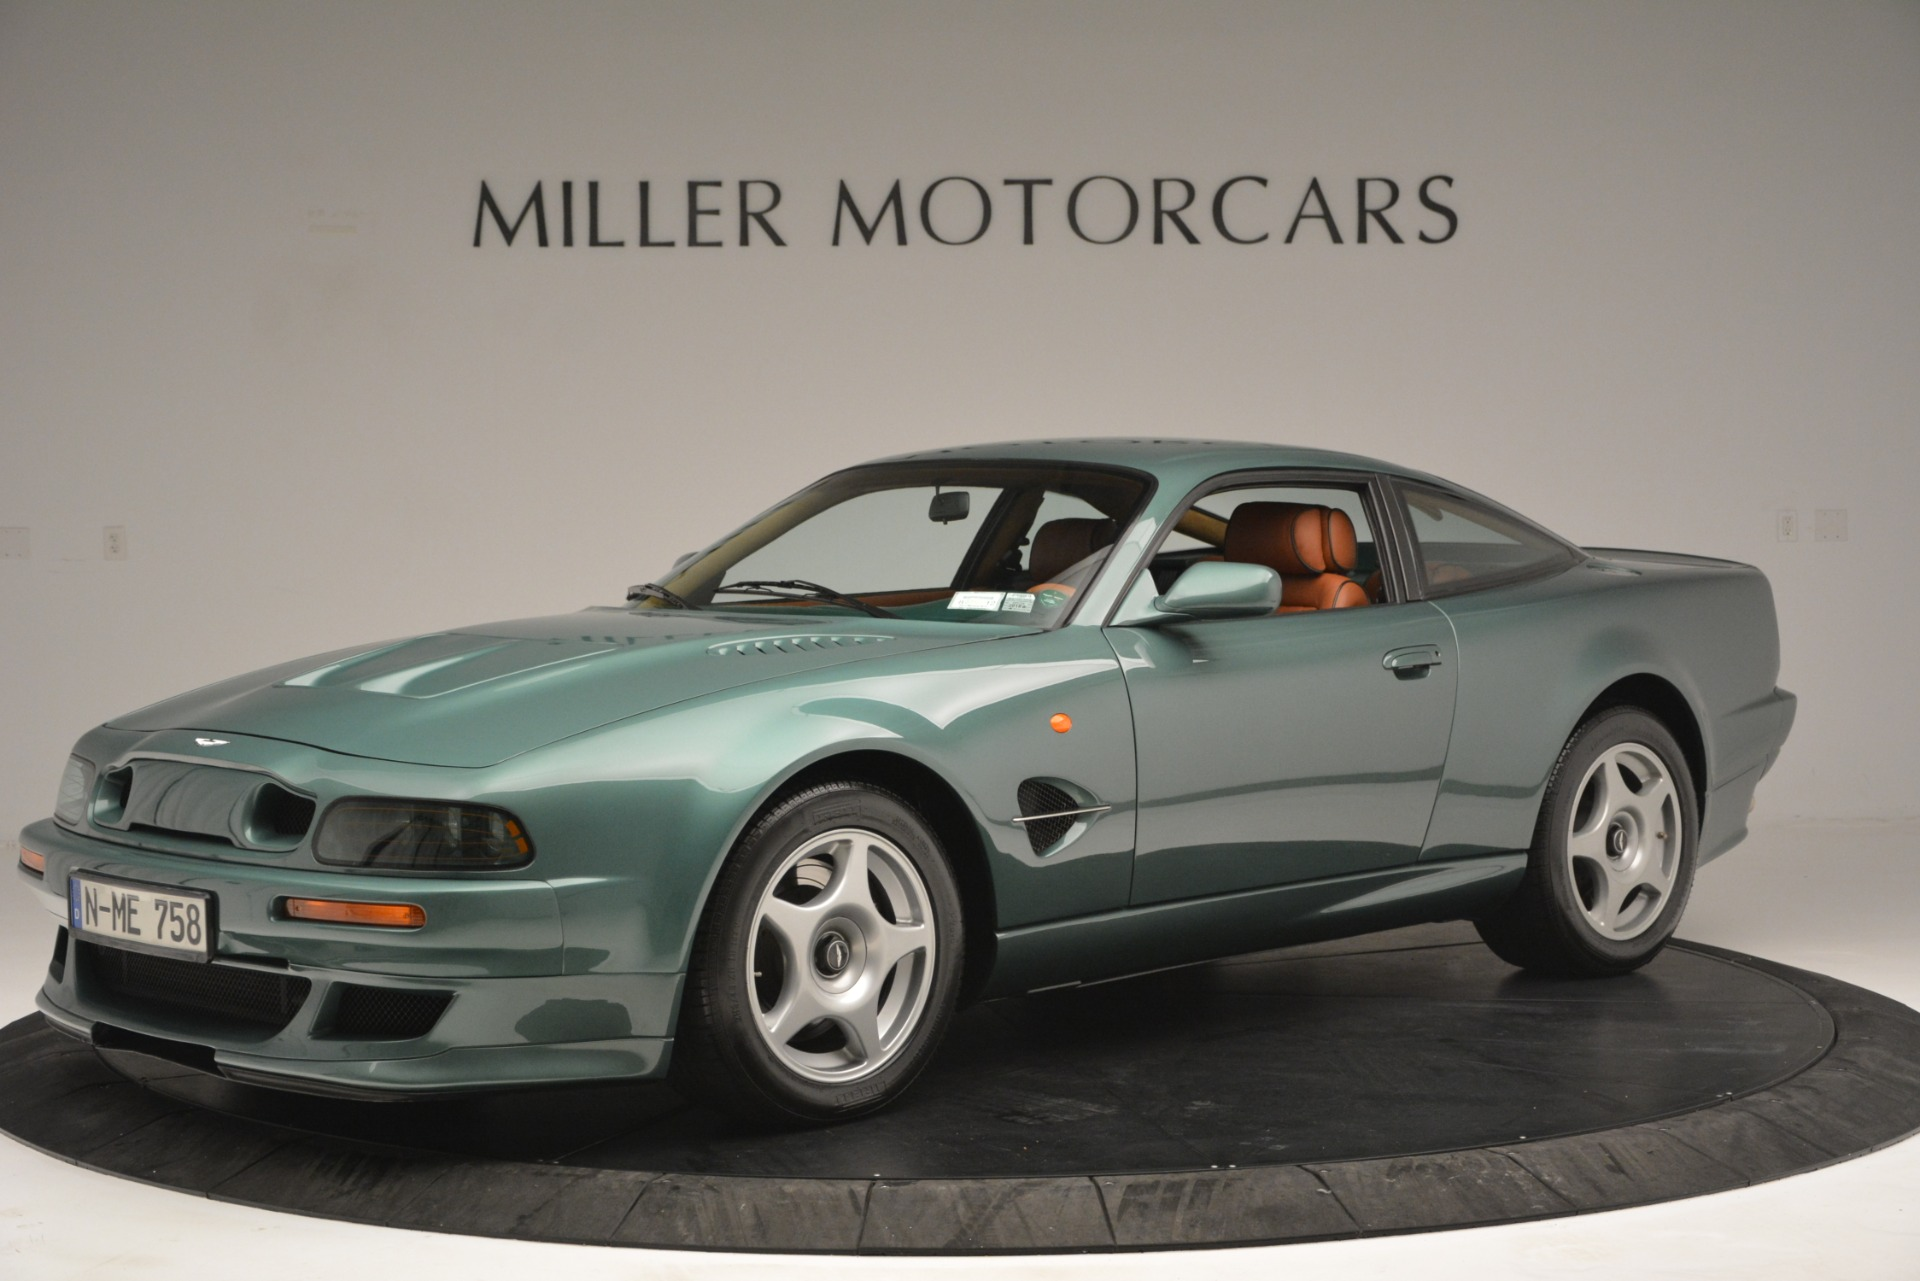 Used 1999 Aston Martin V8 Vantage Le Mans V600 Coupe for sale $550,000 at Maserati of Westport in Westport CT 06880 1